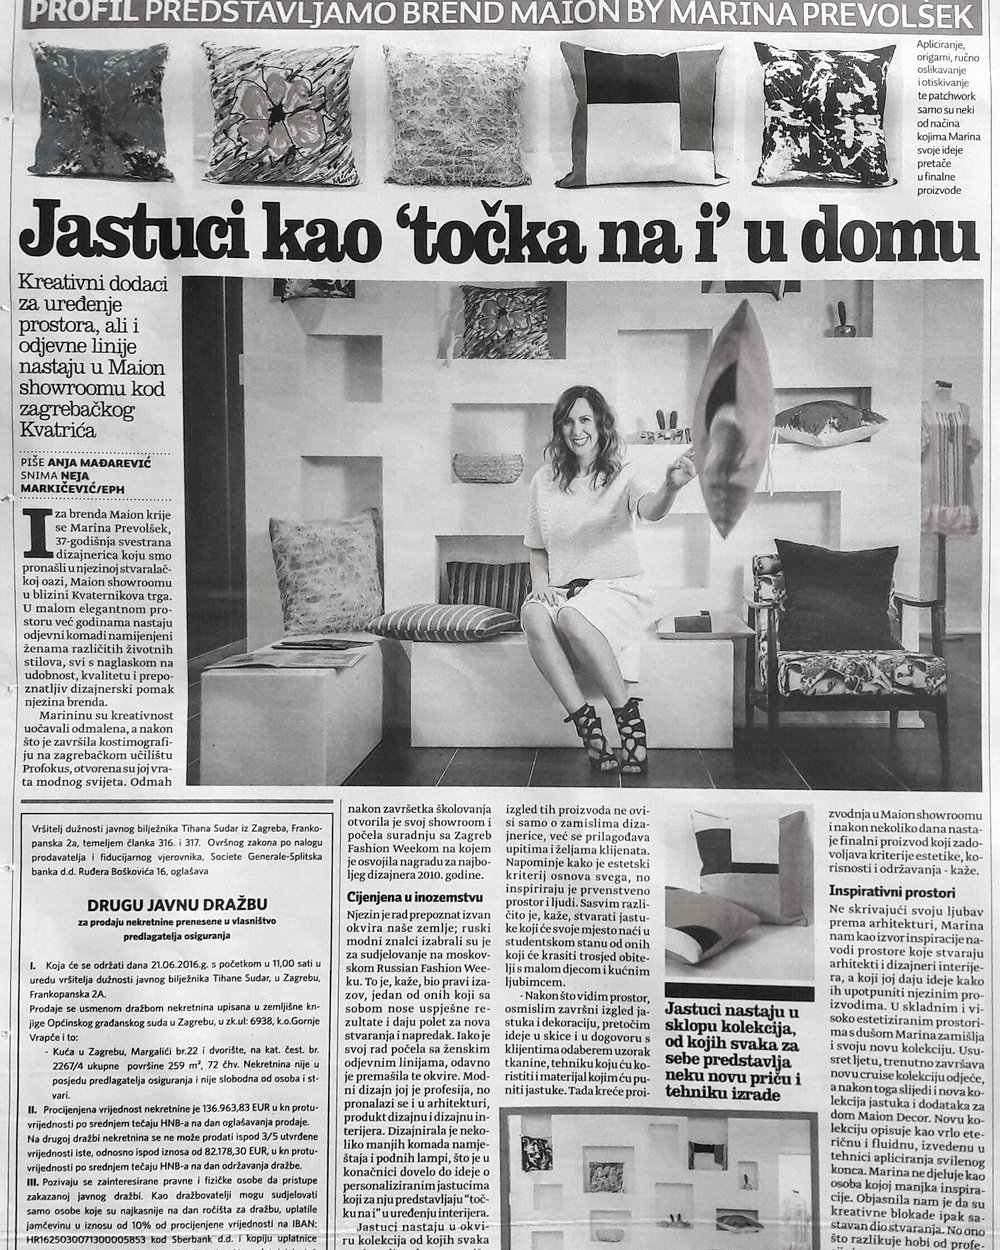 MaionDecor in daily newspapers Vecernji list